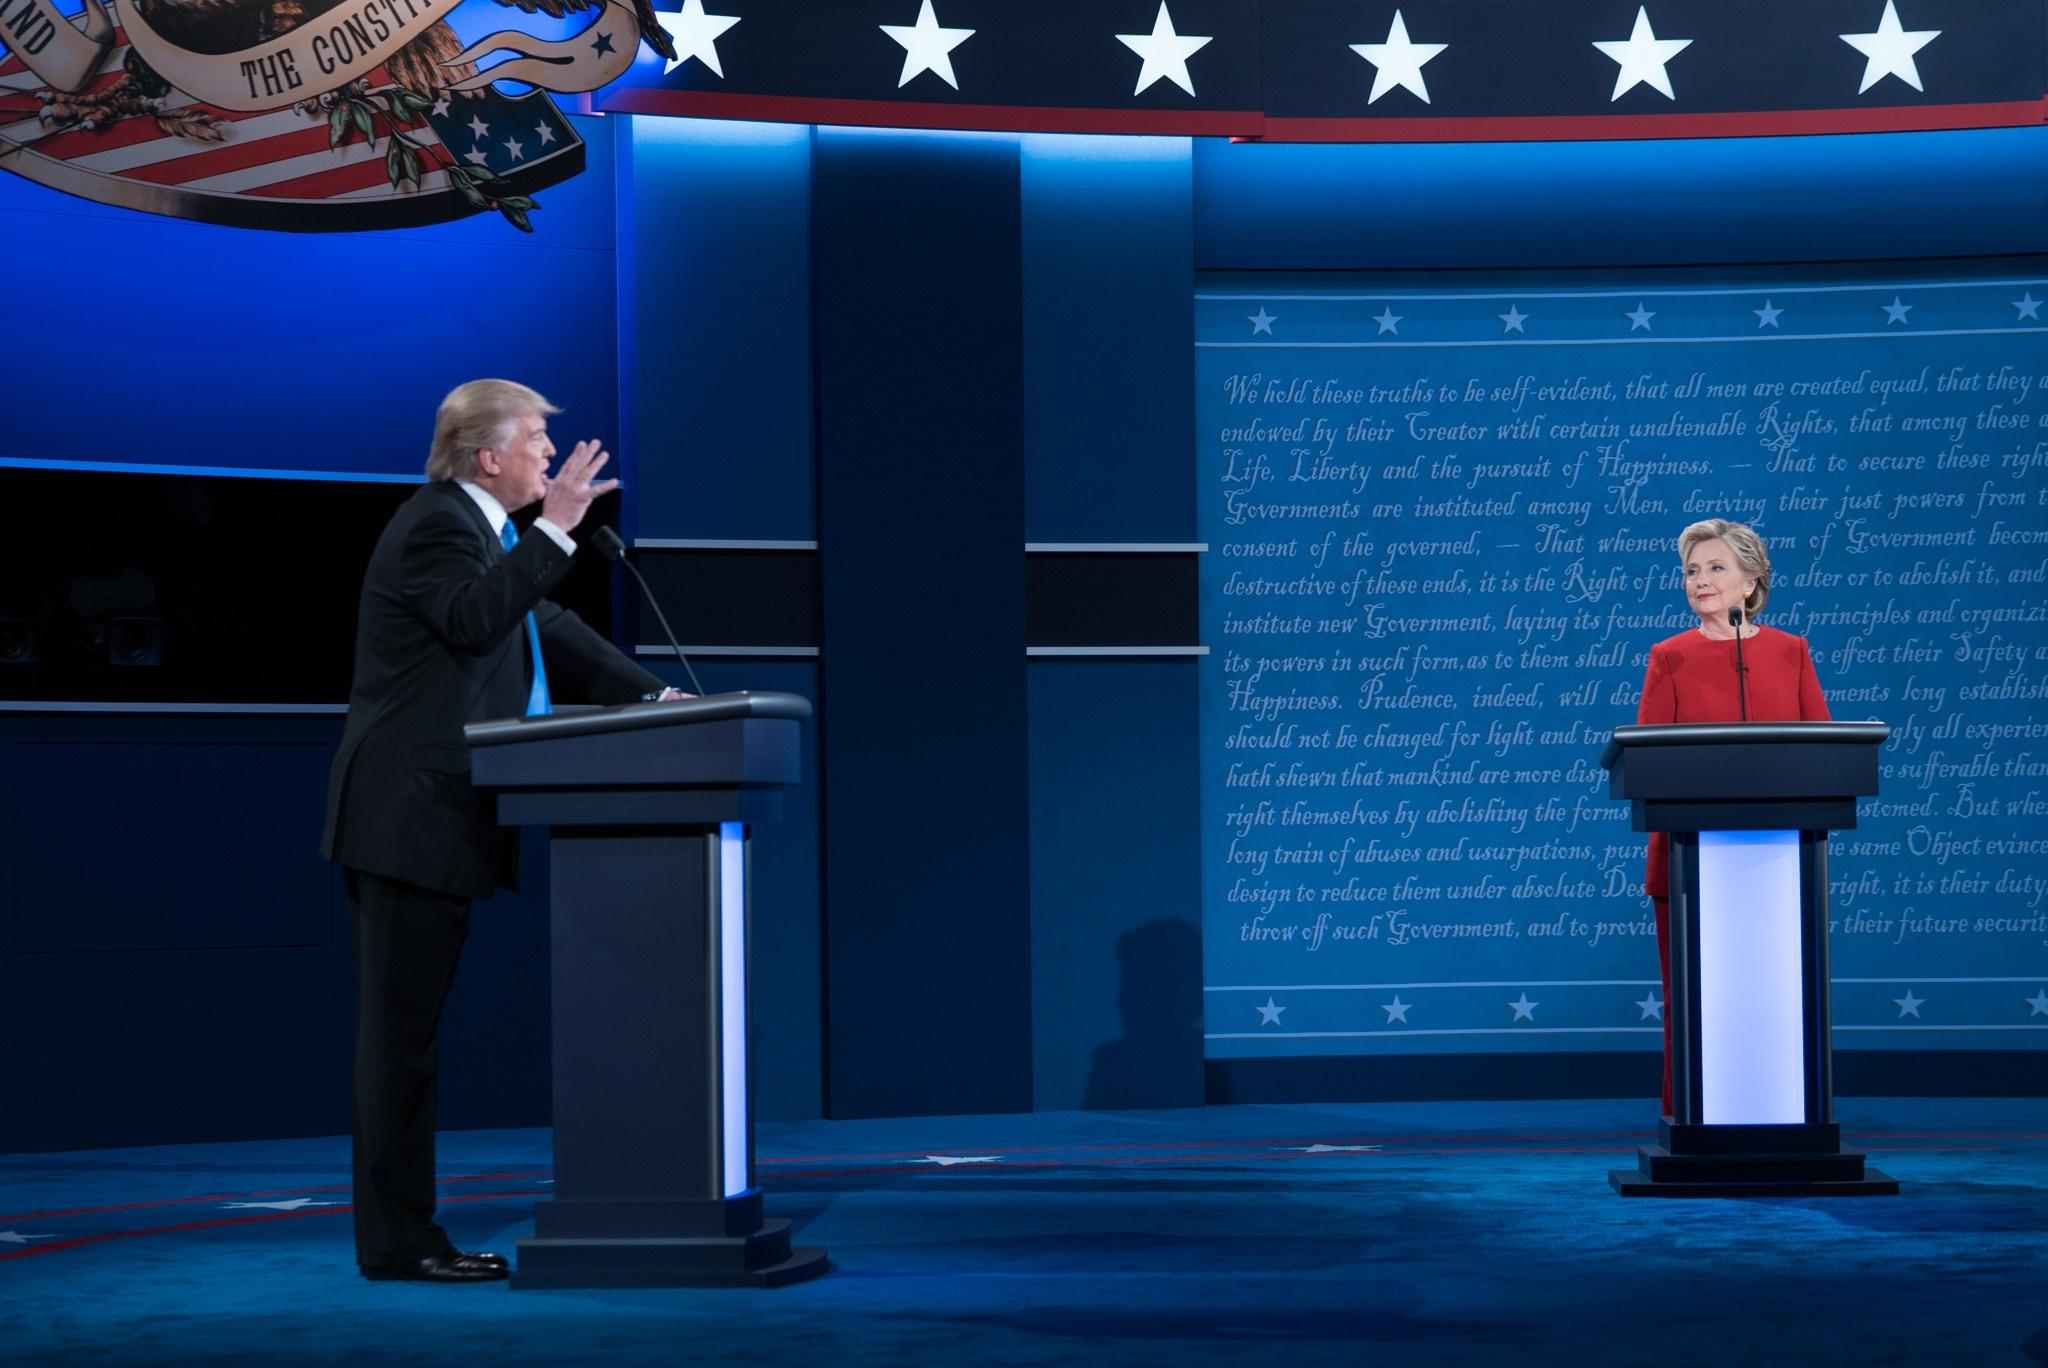 Shifting strategies for the final debate and Ivana Trump